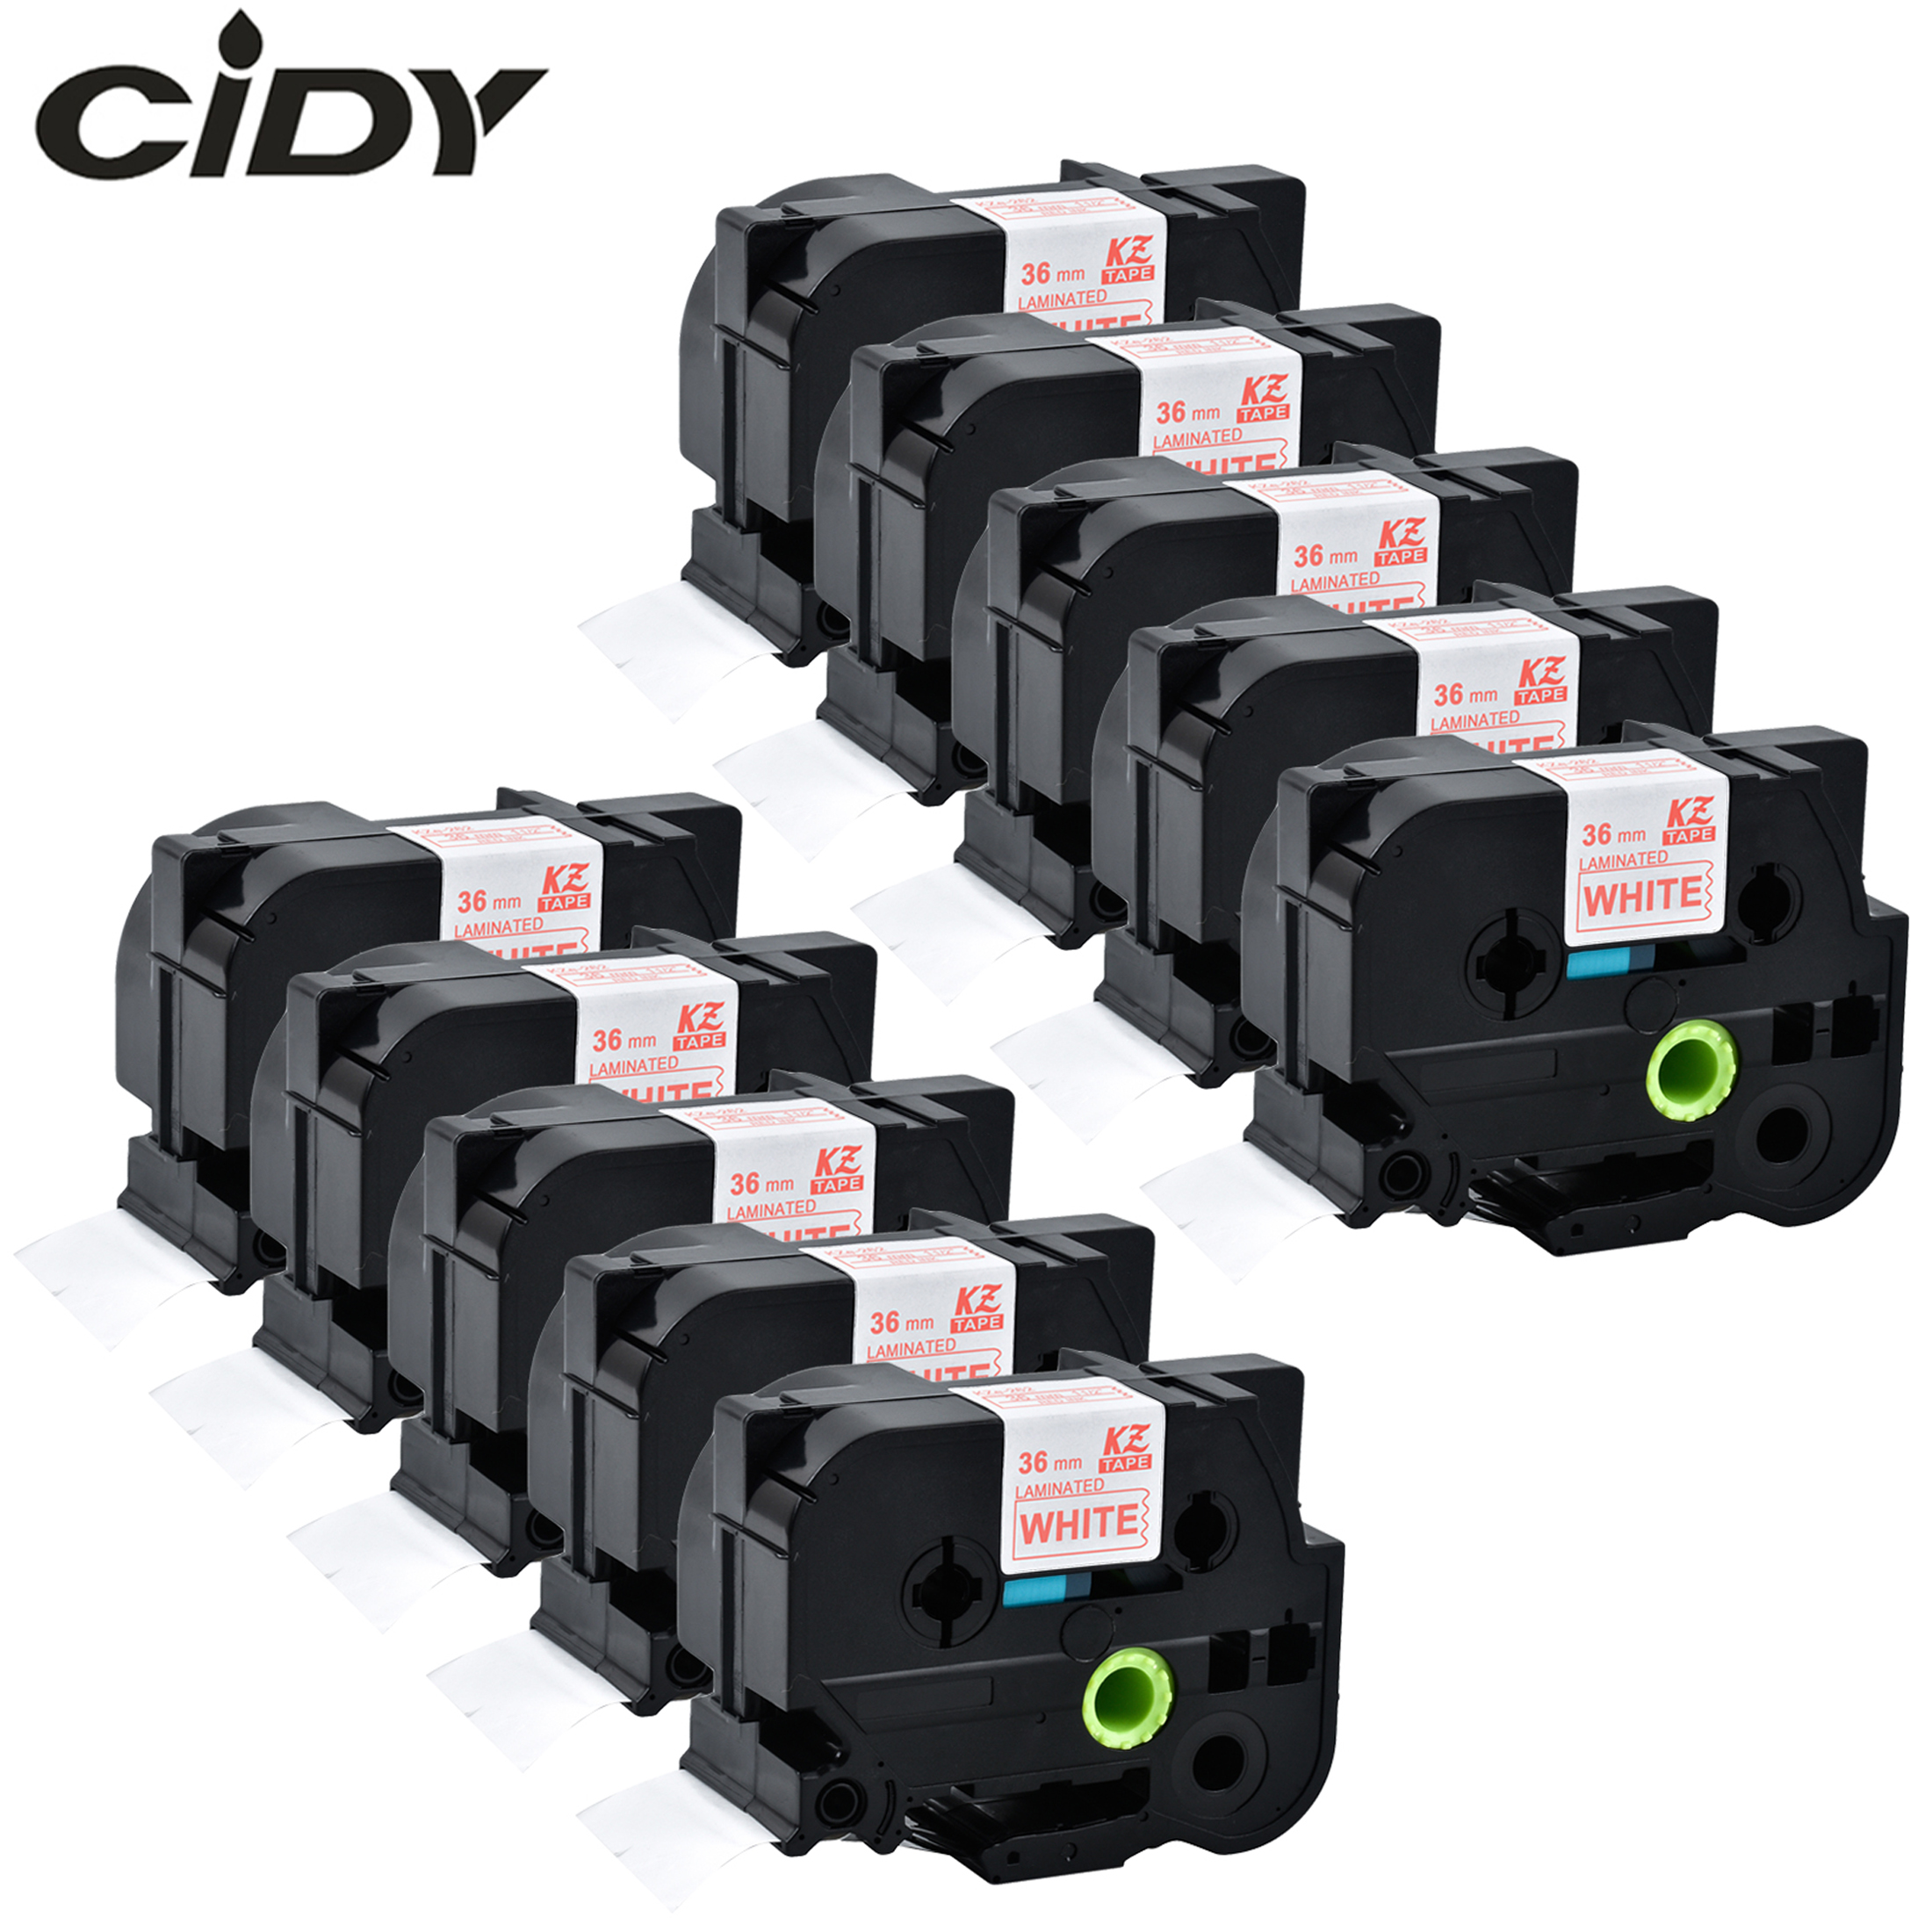 CIDY 10PCS compatible TZe 262 tz262 Tz 262 tze262 red on white label tape for brother label printer| | |  - title=